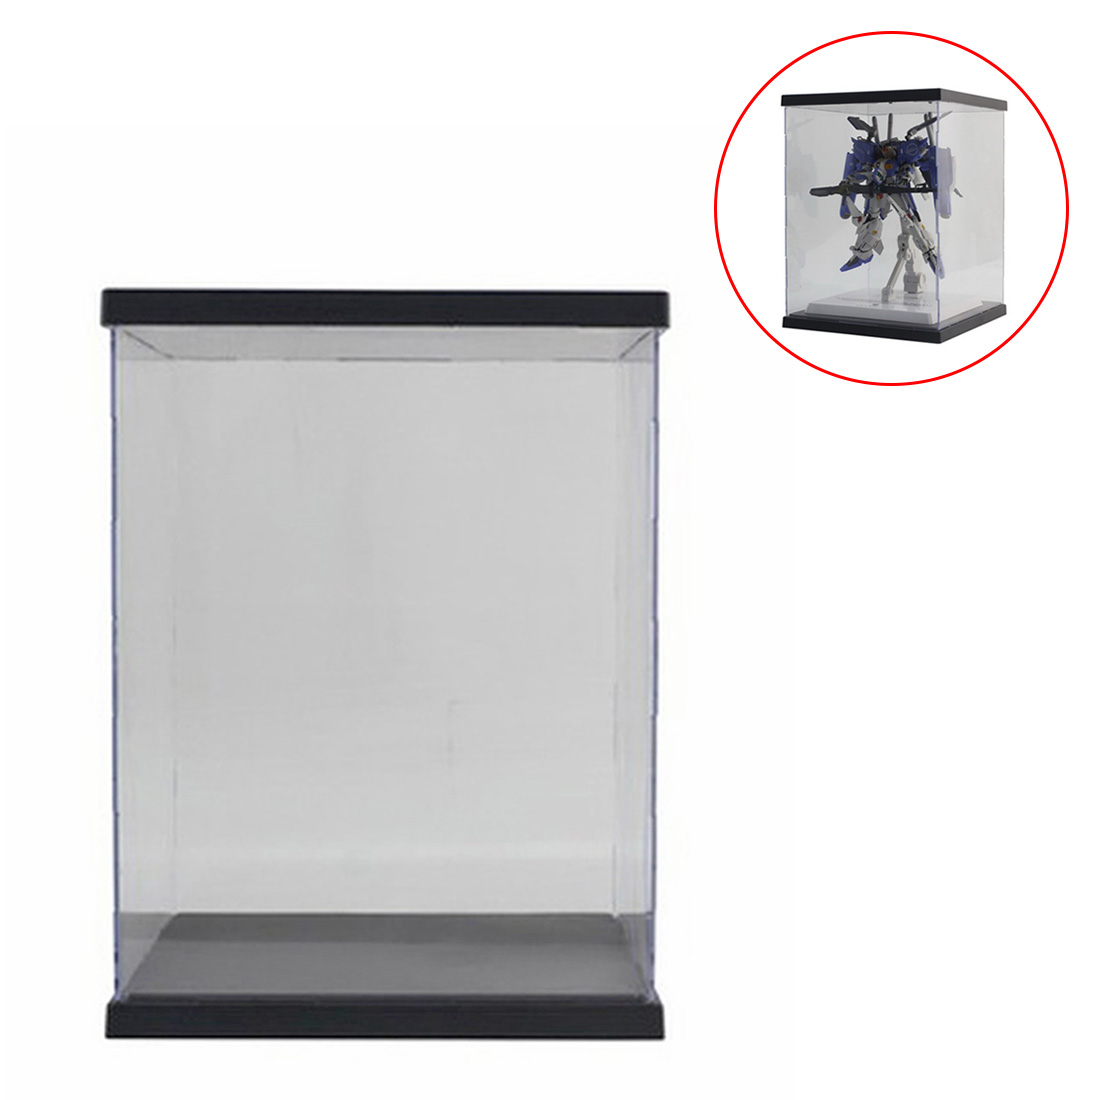 21 X 21 X 30cm/20cm/35cm/27cm Transparent Acrylic Dustproof Display Show Box With Lights For Figure Model/For <font><b>Gundam</b></font> MG RG <font><b>BB</b></font> image